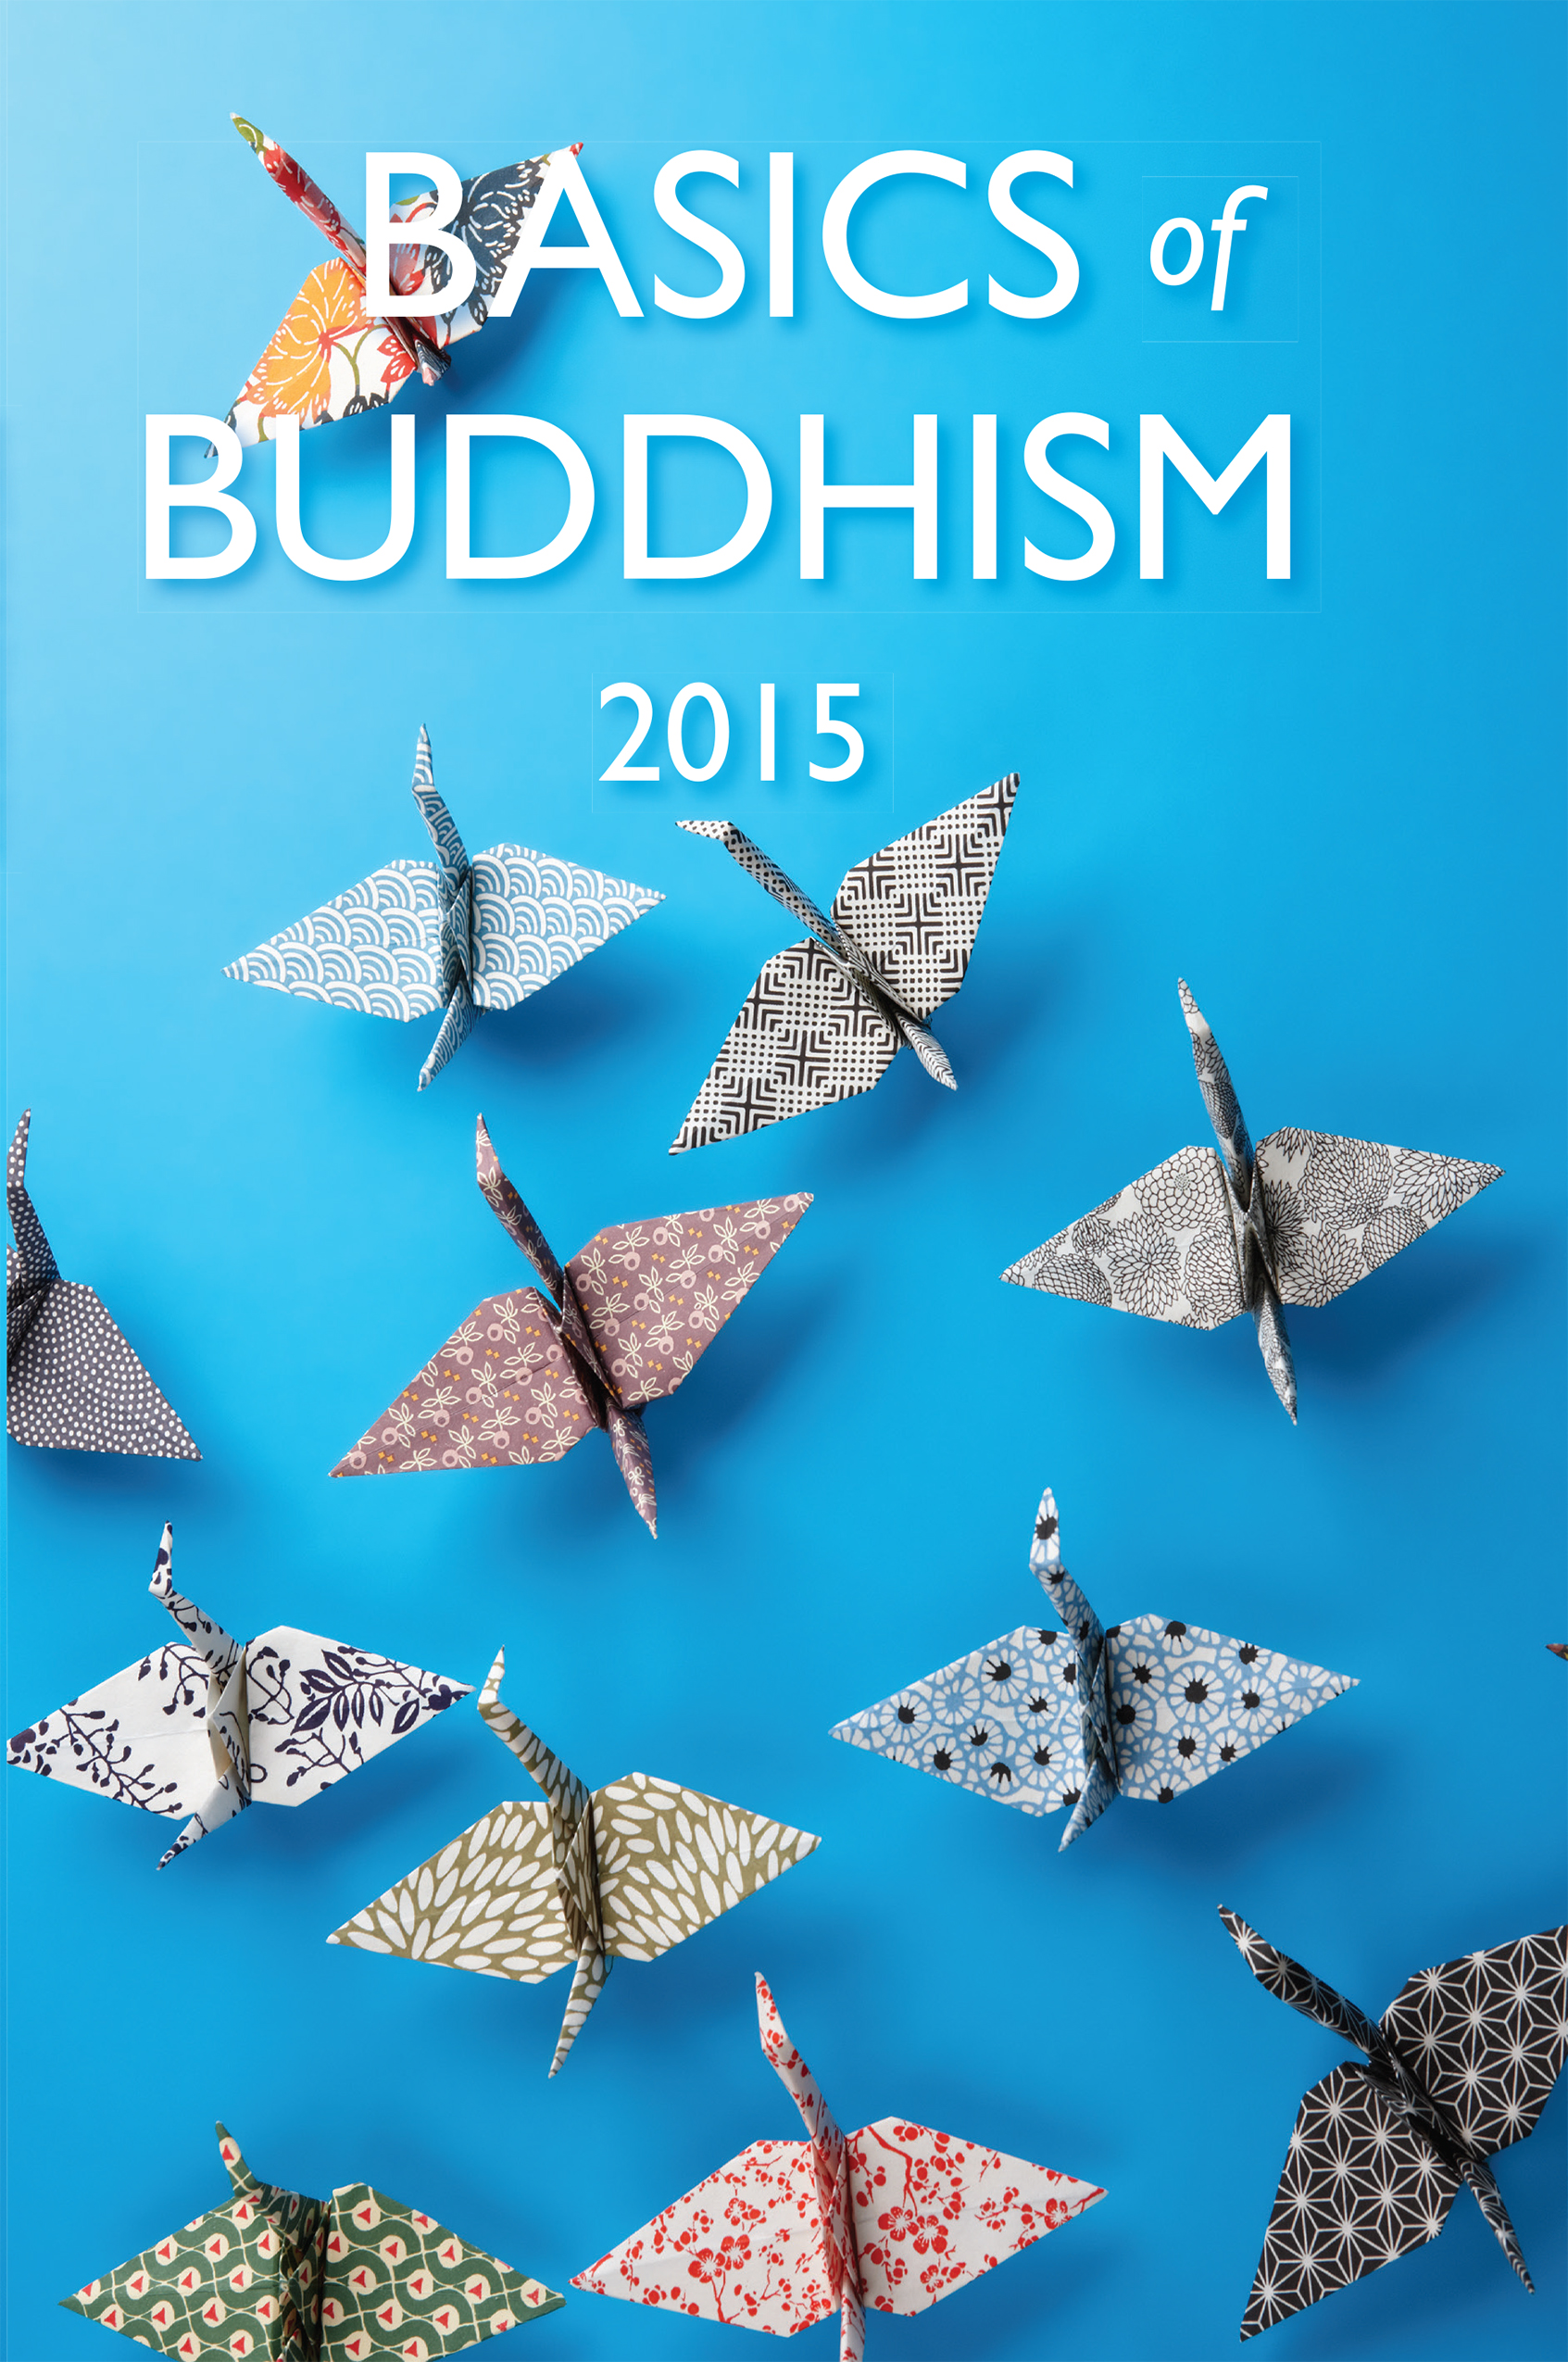 BASICS OF BUDDHISM 2015